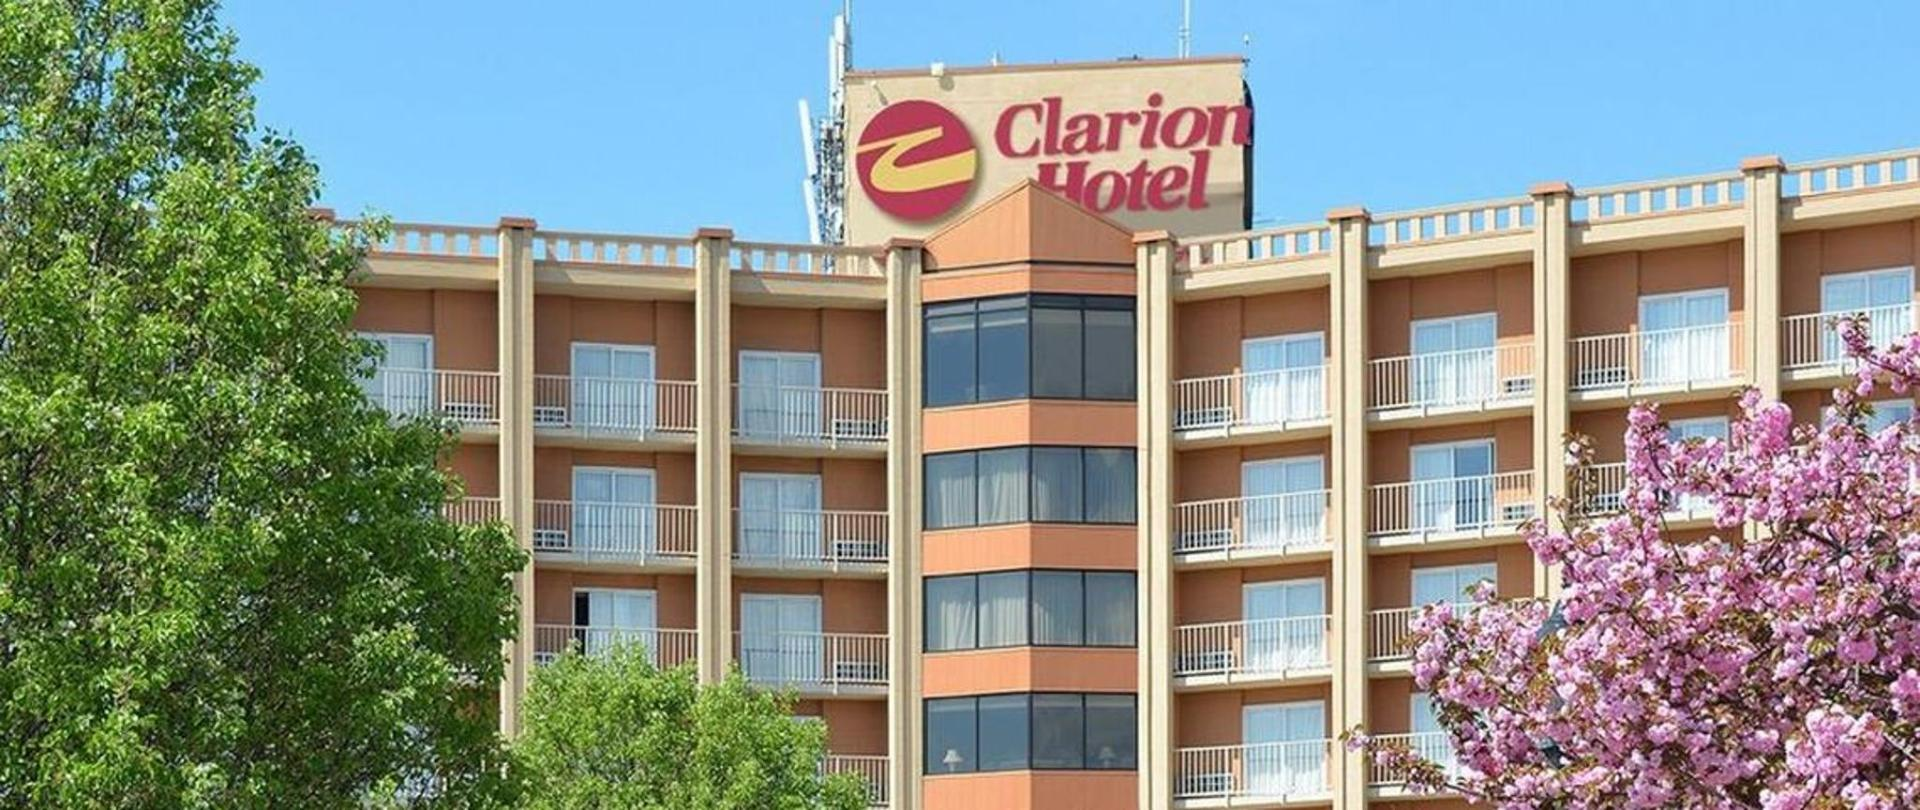 Clarion Gront Squarewithlogo Jpeg 1140x481 0 54 11111